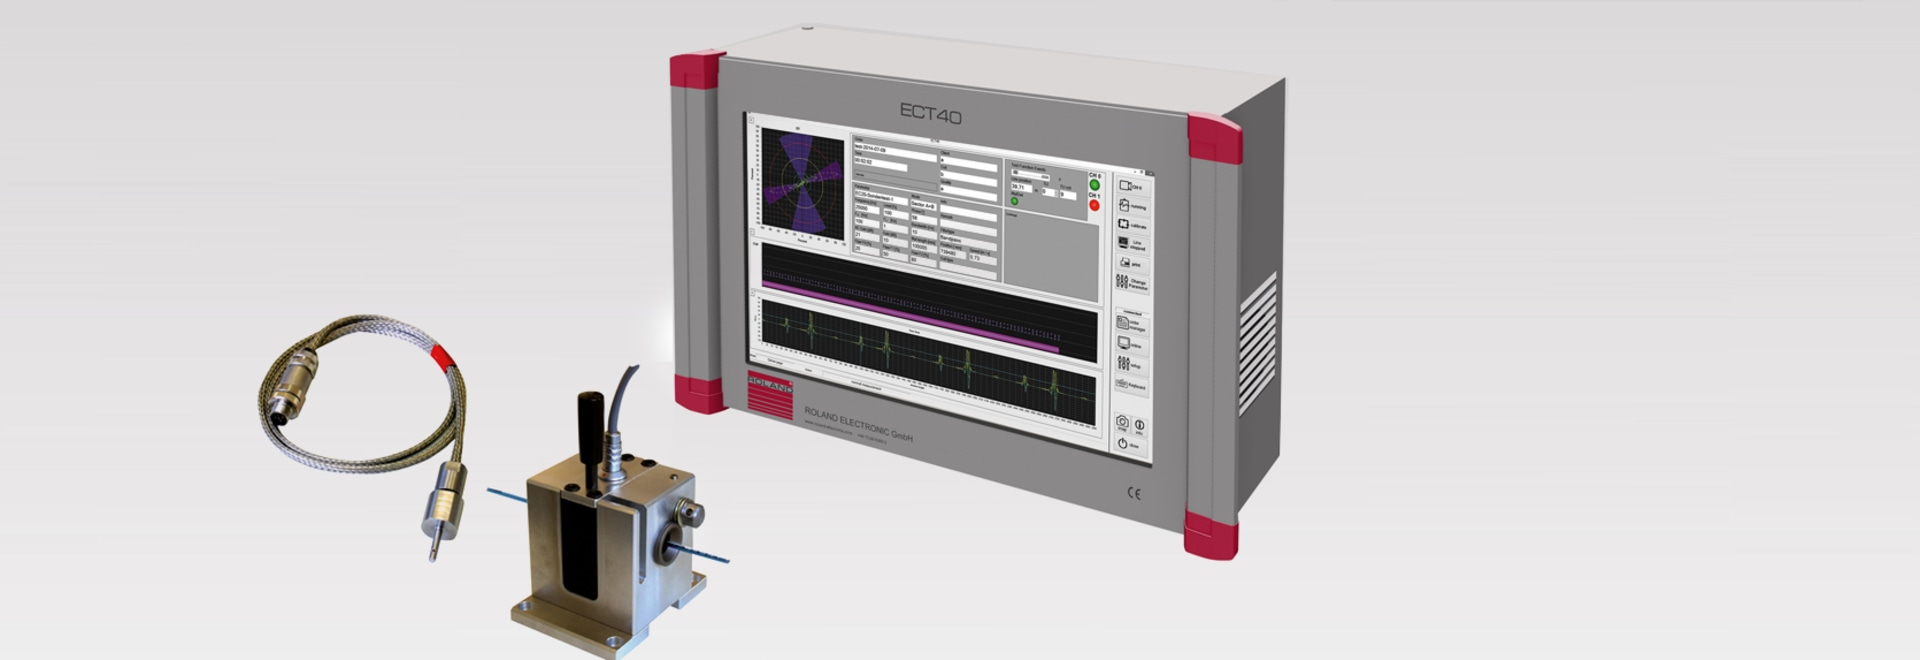 ECT40 - Eddy Current Fault Inspection System